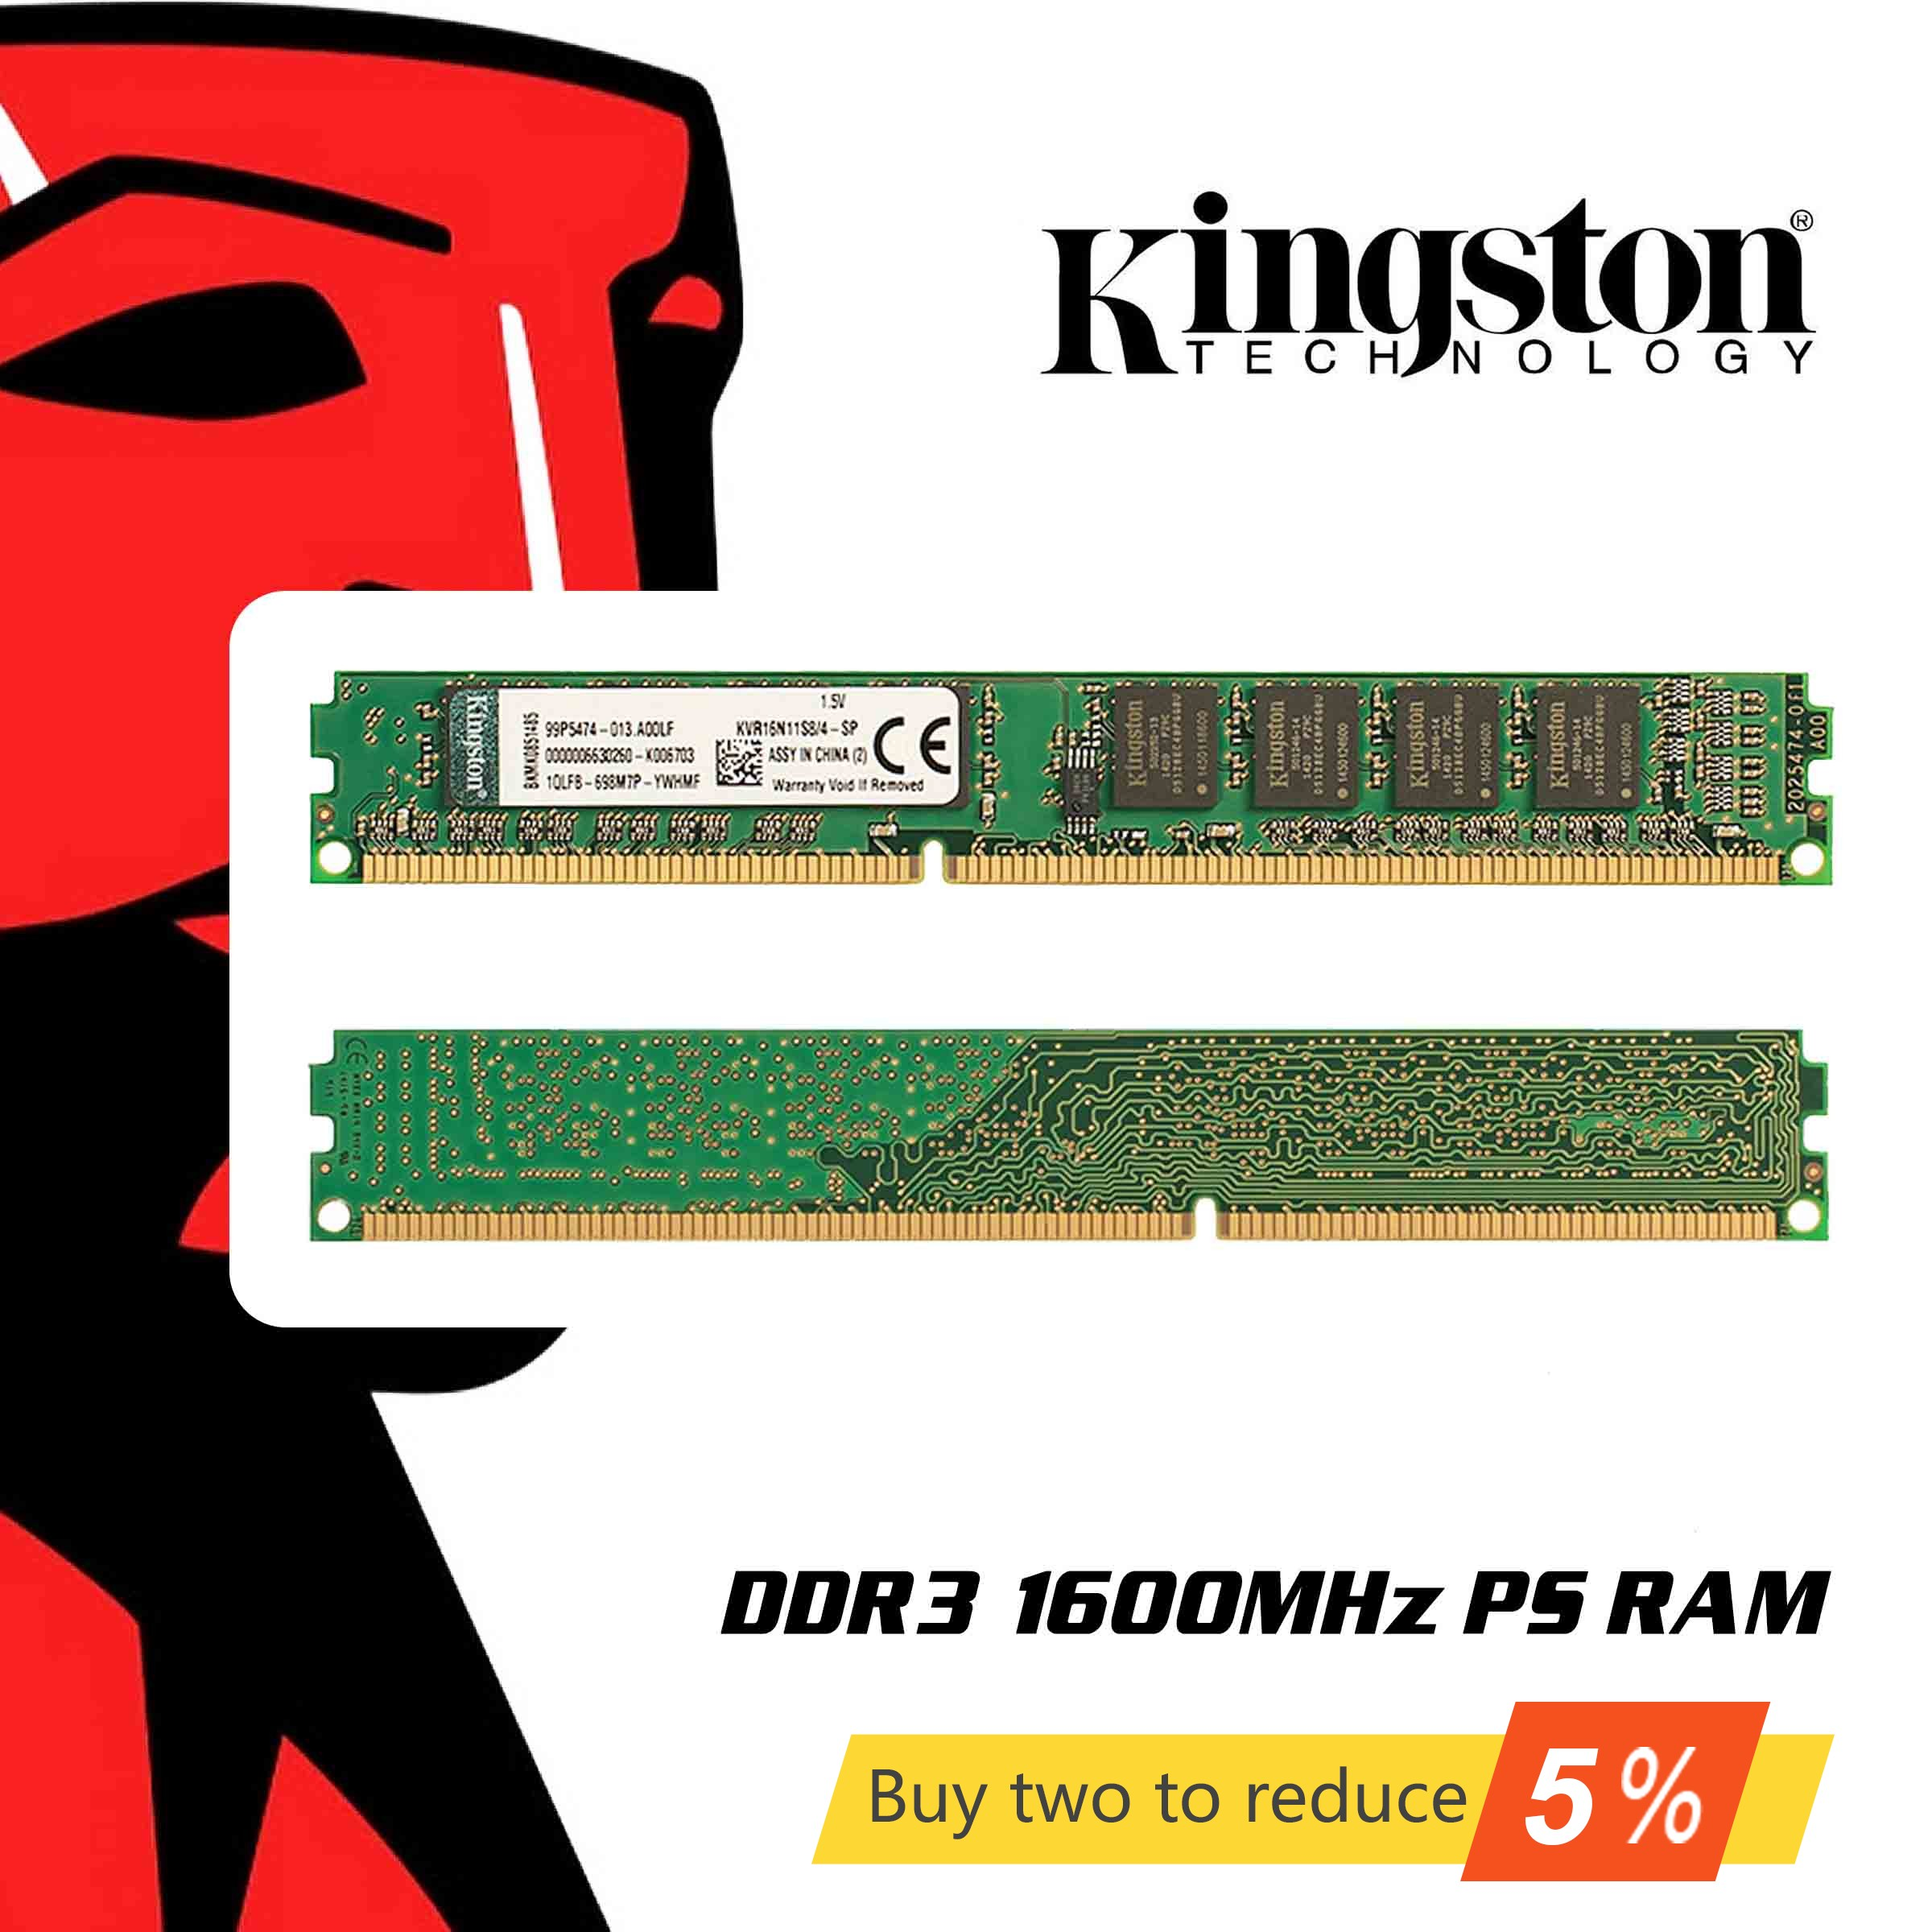 Original Kingston RAM Memory <font><b>DDR3</b></font> 1600MHZ 4GB <font><b>8GB</b></font> Memoria RAMs <font><b>1600</b></font> MHz 8 Gigabytes Gigs Stick for Desktop Laptop PC <font><b>Notebook</b></font> image